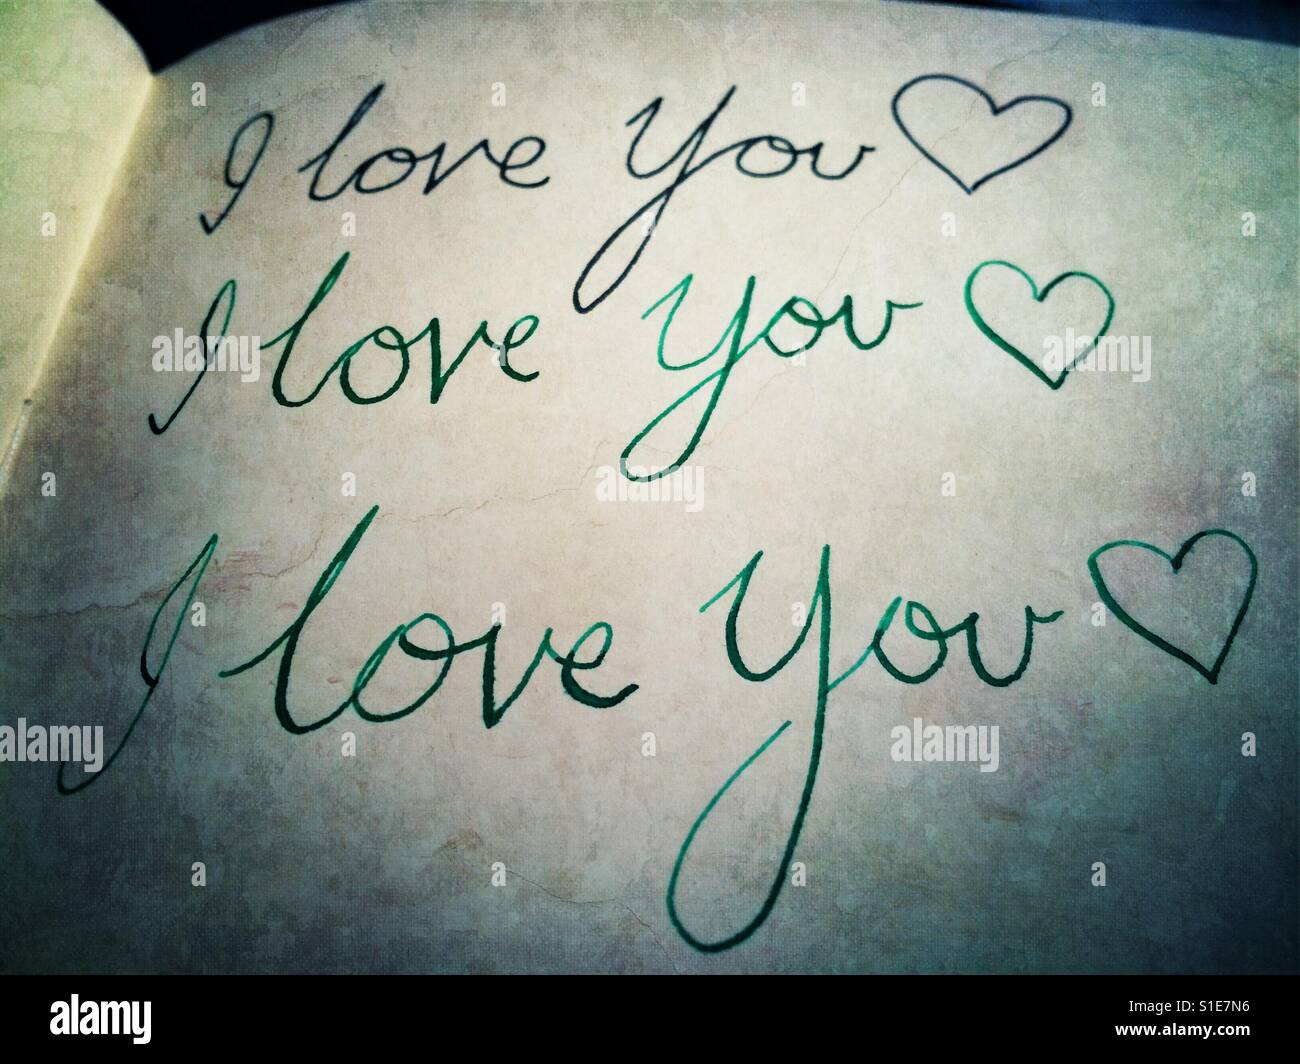 I love you written on a notebook over and over - Stock Image